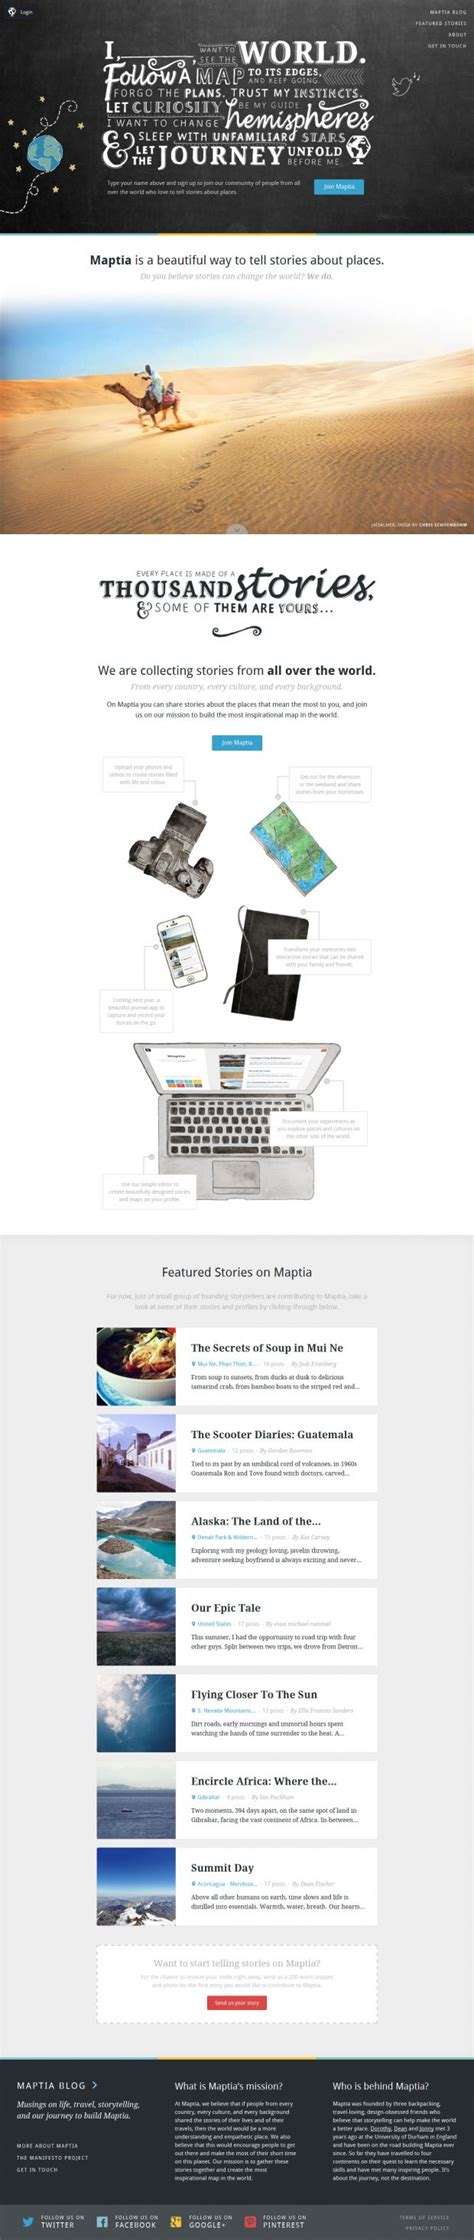 design inspiration stories maptia is a beautiful way to tell stories about places